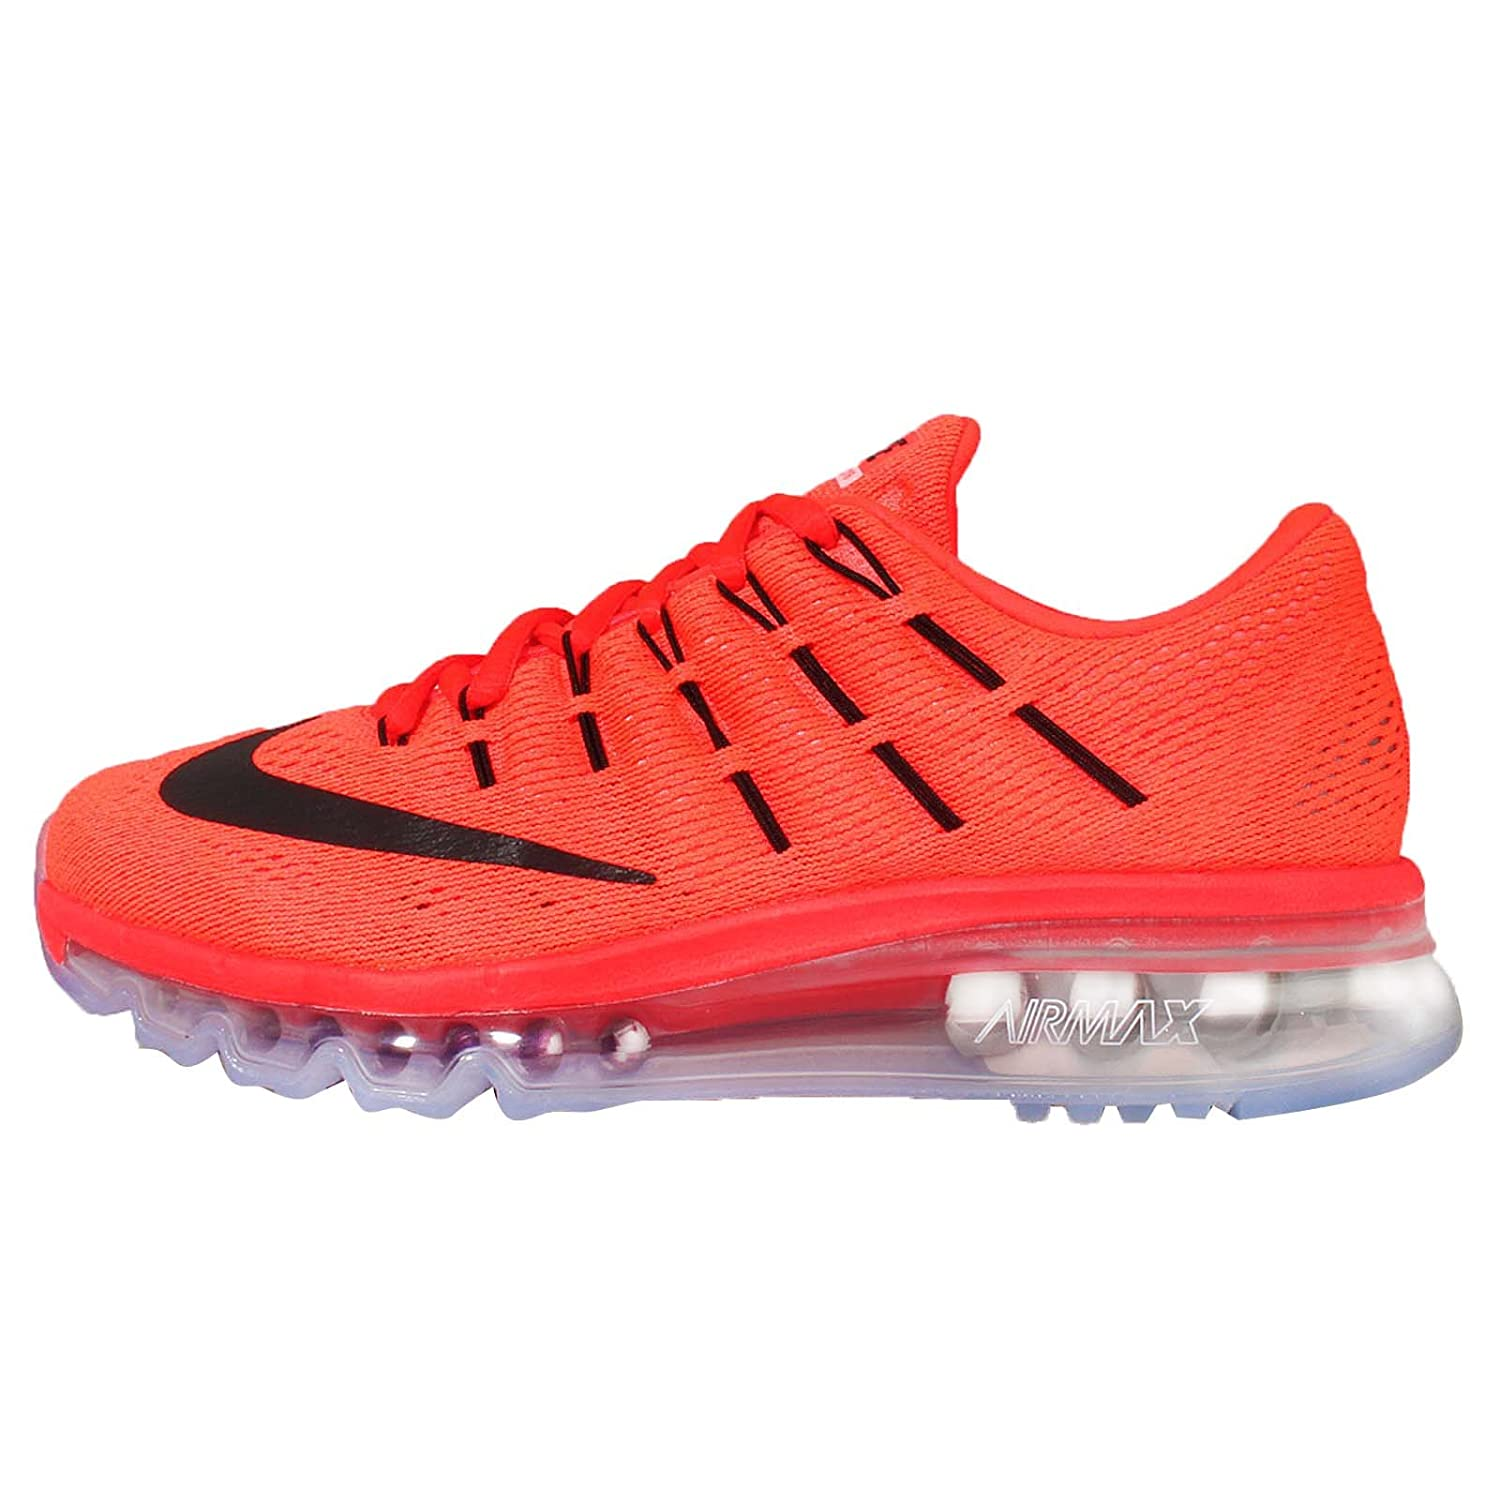 plus récent 425ca 63322 Amazon.com | Nike Women's Air Max 2016 Women's Running Shoe ...